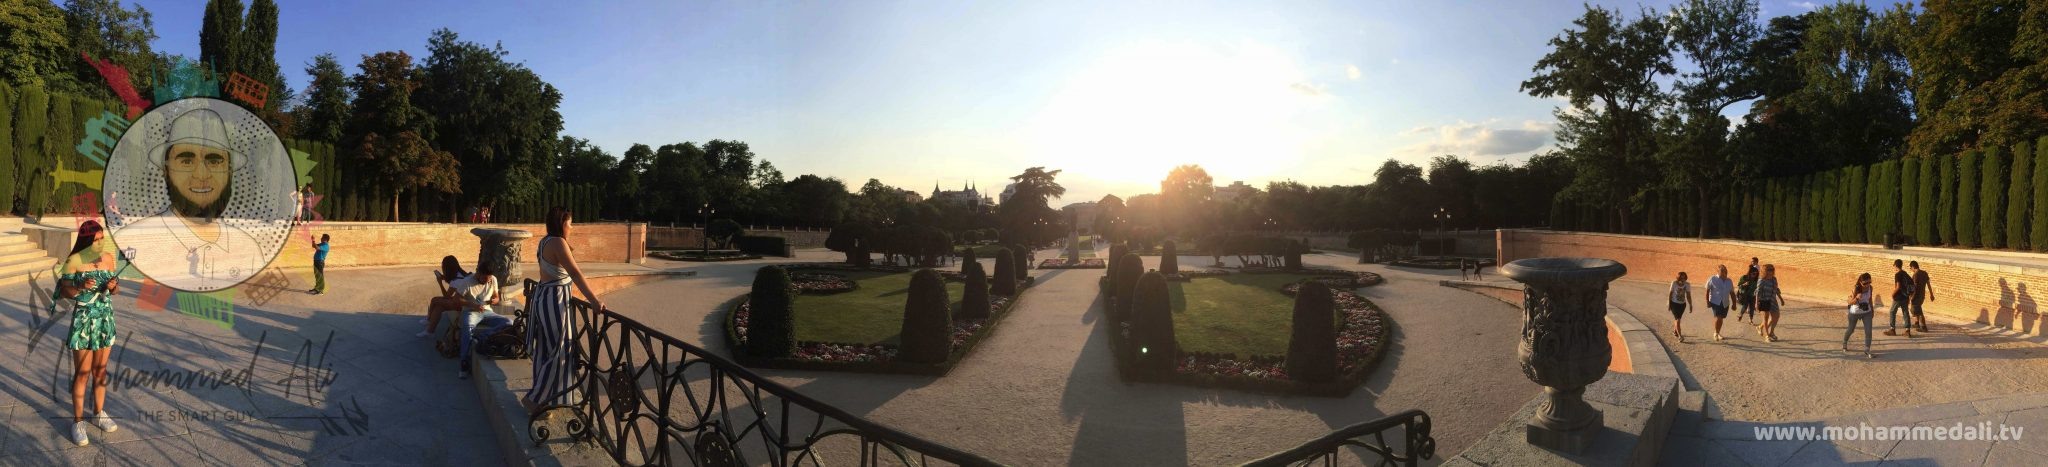 Breathtaking panoramic view over El Retiro Park